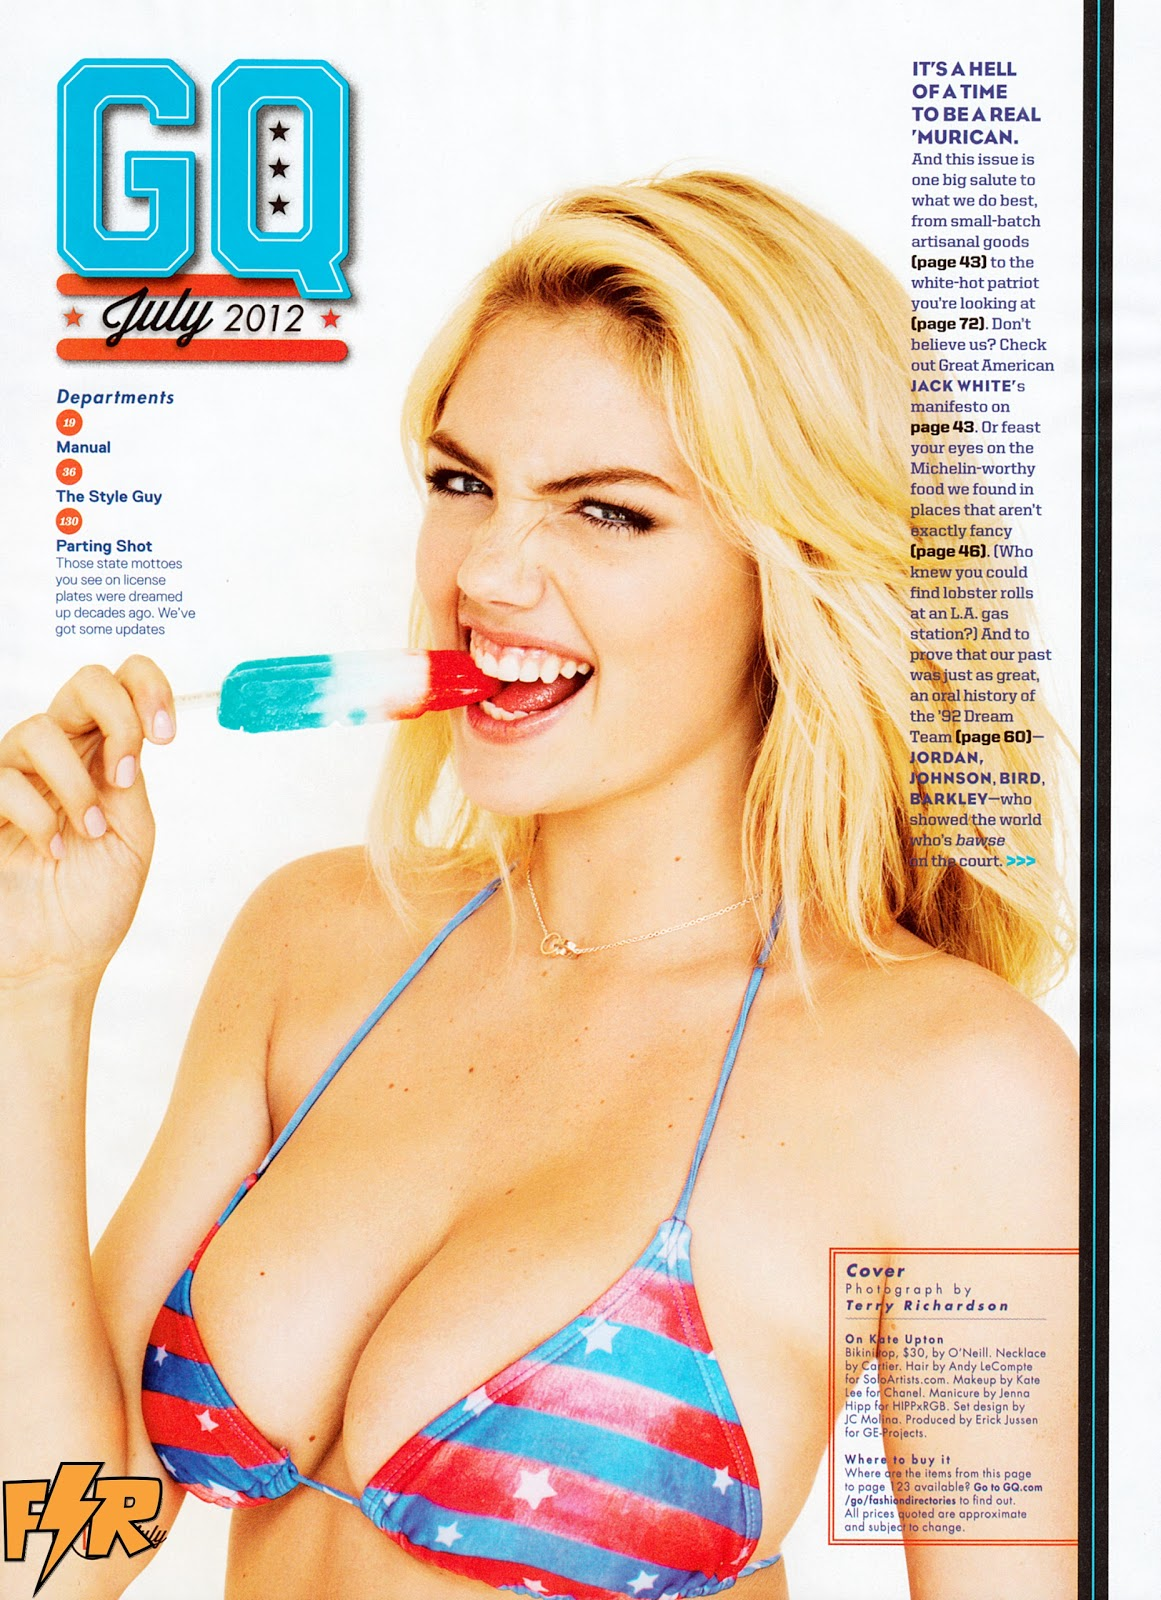 http://1.bp.blogspot.com/-1Rg96qedNY4/T-XZTGLx9RI/AAAAAAABsV0/EQ7bv6OMtjo/s1600/fashion_scans_remastered-kate_upton-gq_usa-july_2012-scanned_by_vampirehorde-hq-2.jpg